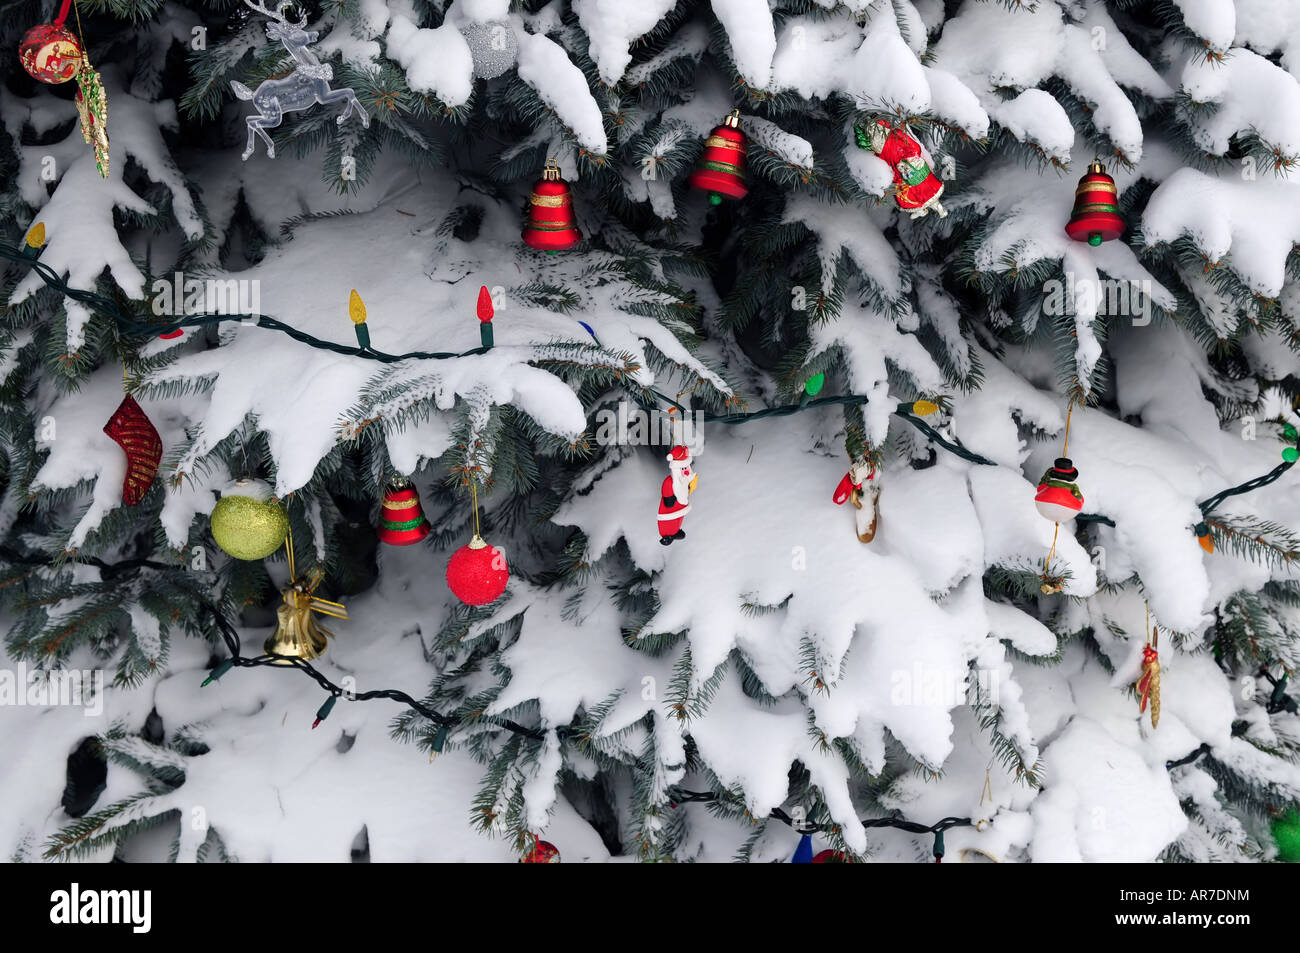 Outside ornaments - Christmas Ornaments Hanging On Snow Covered Spruce Tree Outside